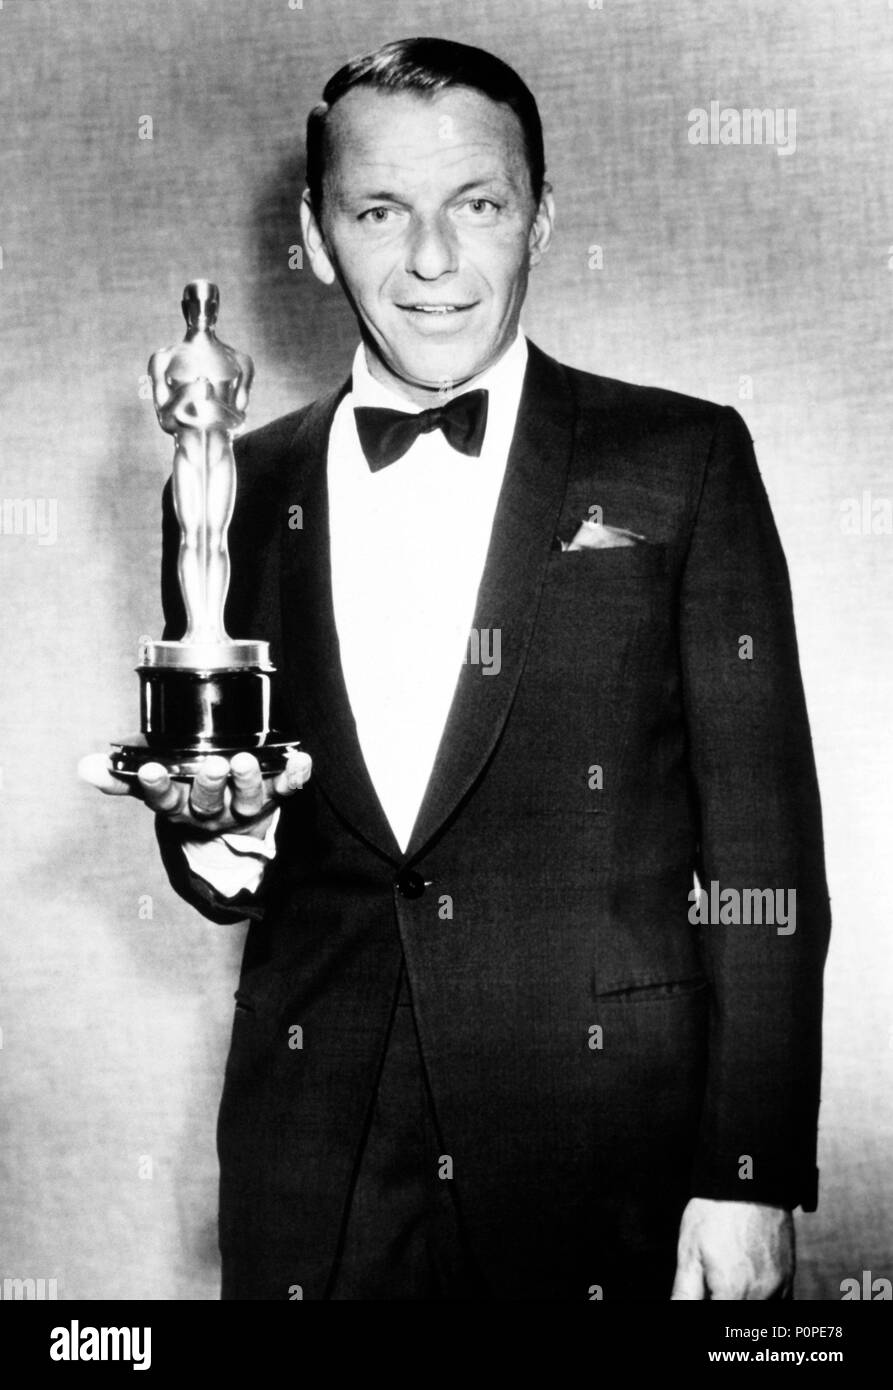 """Description: 26th Annual Academy Awards (1954). Frank Sinatra, best actor in a supporting role for """"From Here to Eternety""""..  Year: 1954.  Stars: FRANK SINATRA. Stock Photo"""